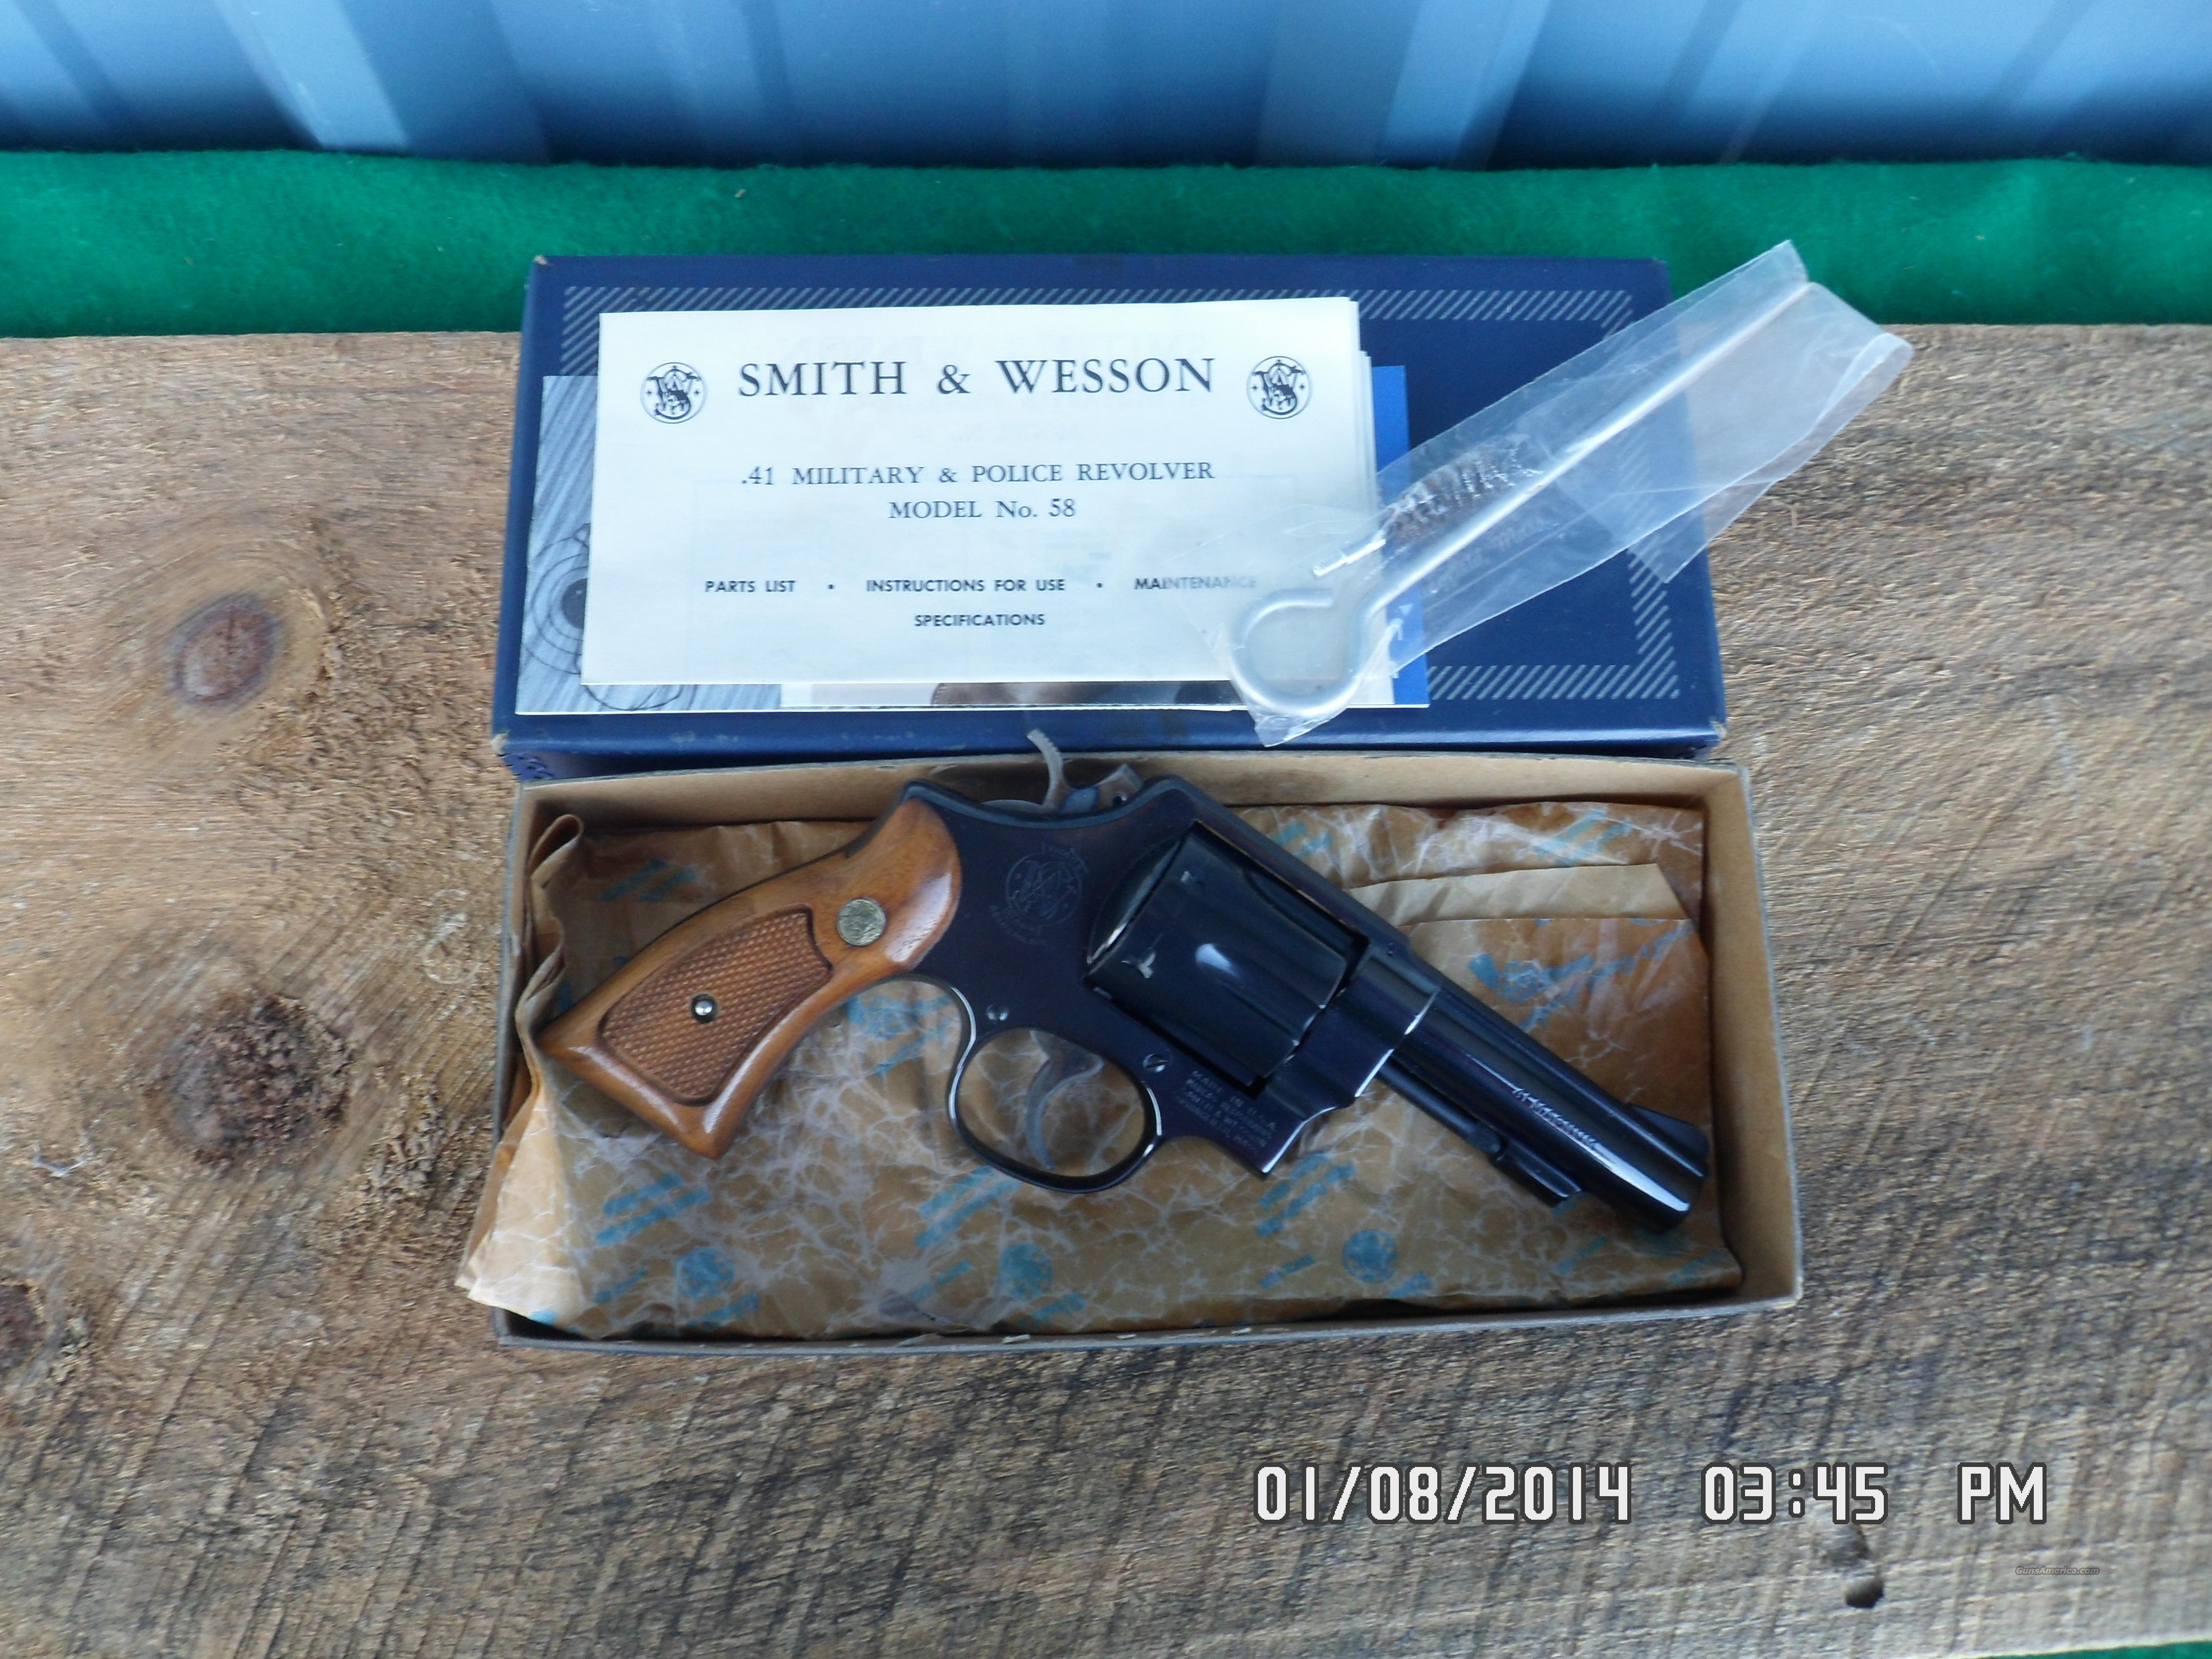 SMITH & WESSON MODEL 58, 41 MAGNUM MILITARY & POLICE REVOLVER, NEW IN ORIGINAL BOX W/ PAPERWORK. 1975  Guns > Pistols > Smith & Wesson Revolvers > Full Frame Revolver